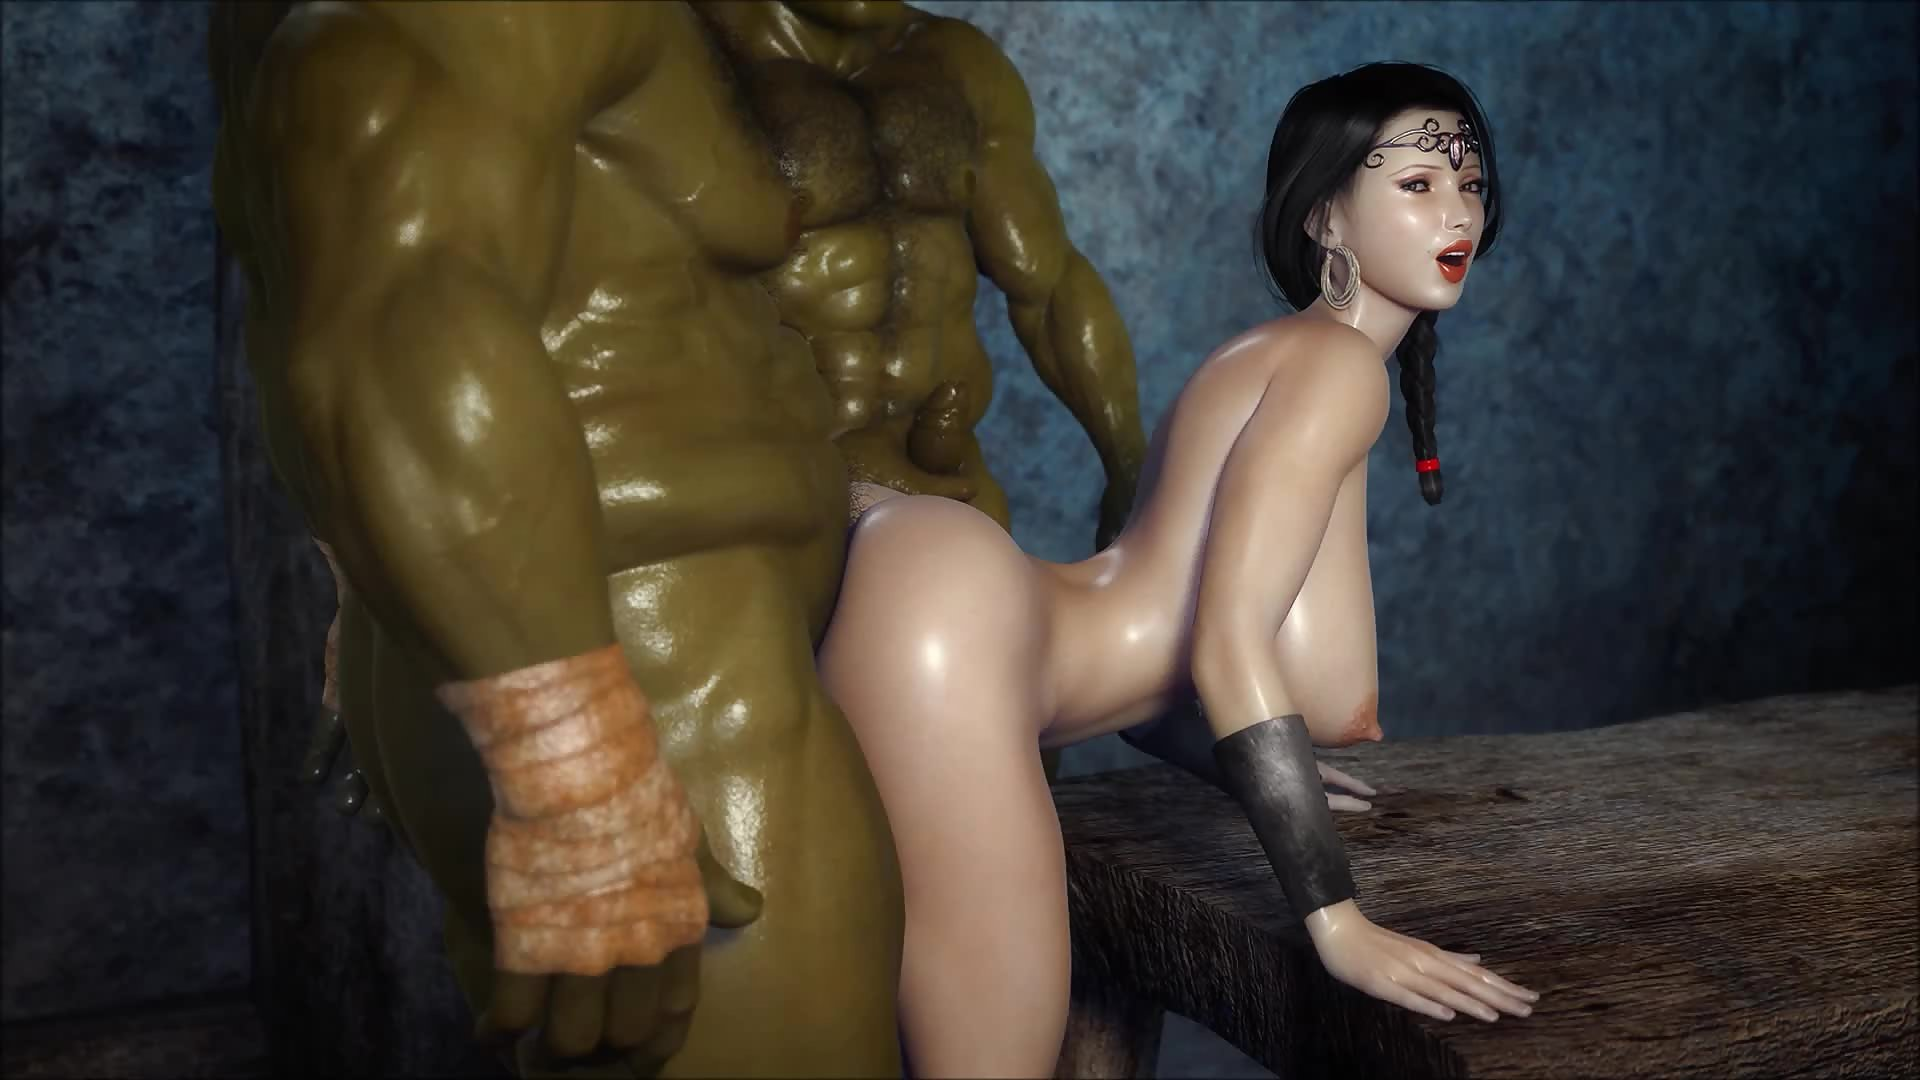 Download 3d orc hentai 3gp fucks picture